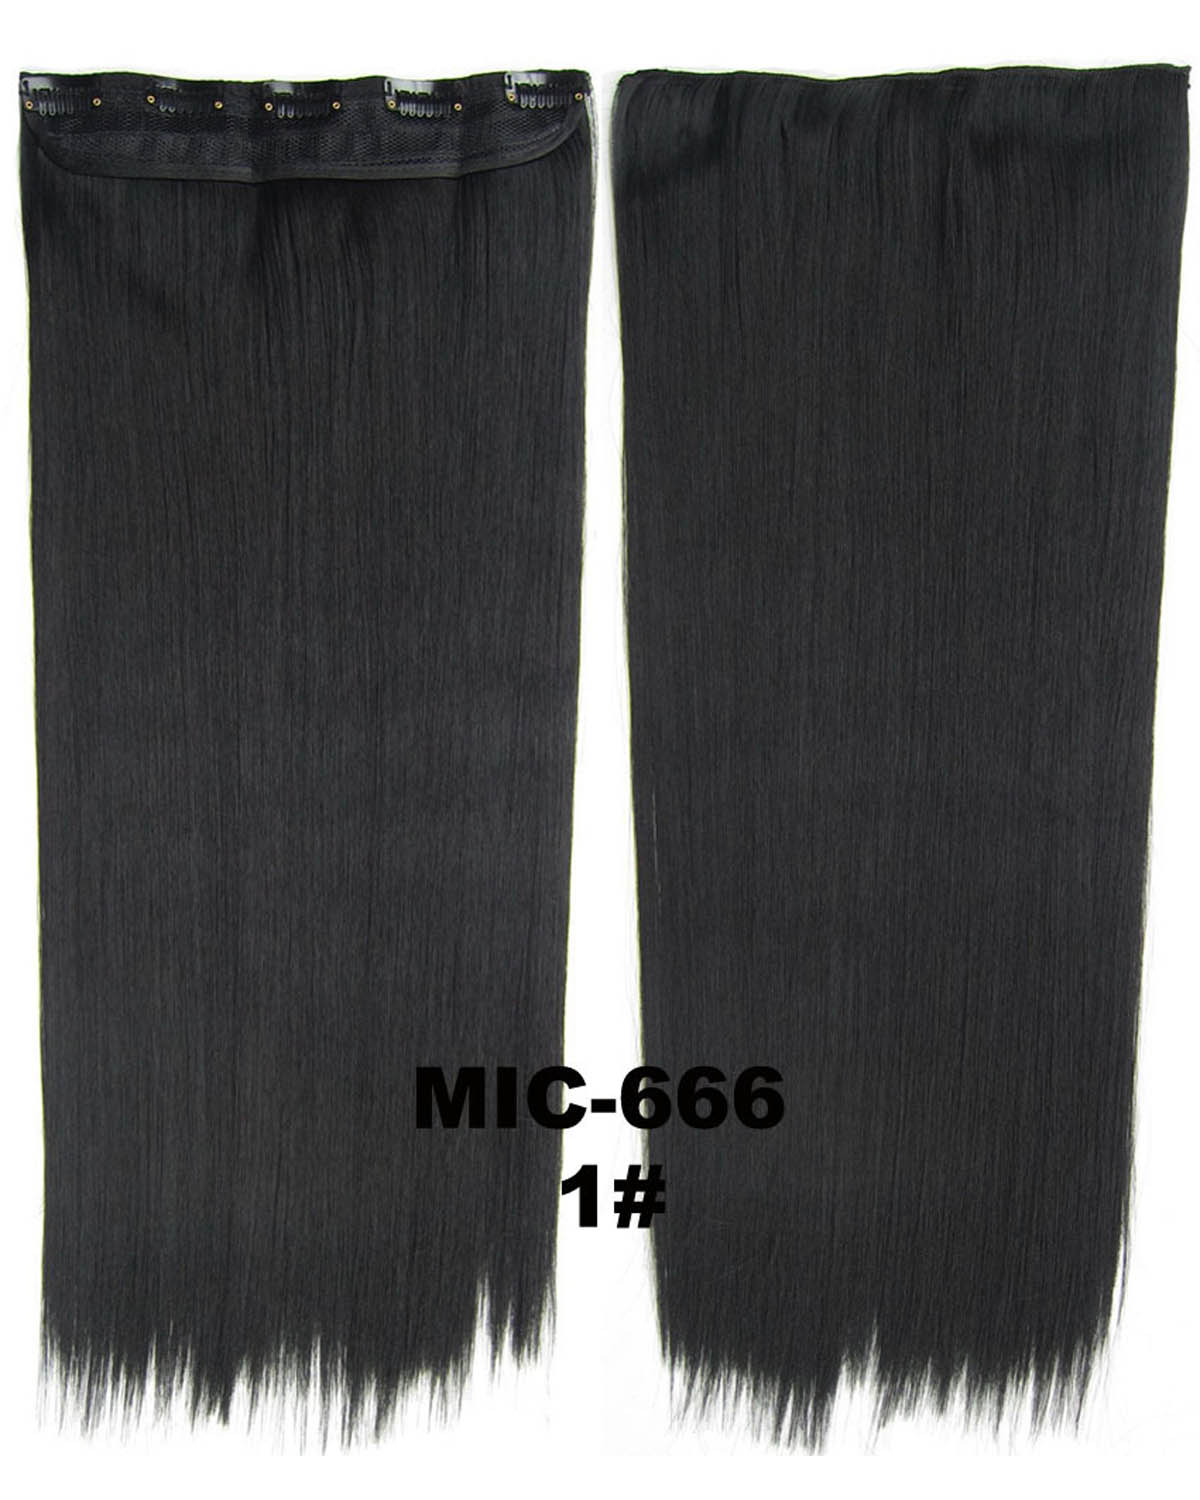 24 inch Hot-sale and Stylish Straight Long One Piece 5 Clips Clip in Synthetic Hair Extension  1# 100g